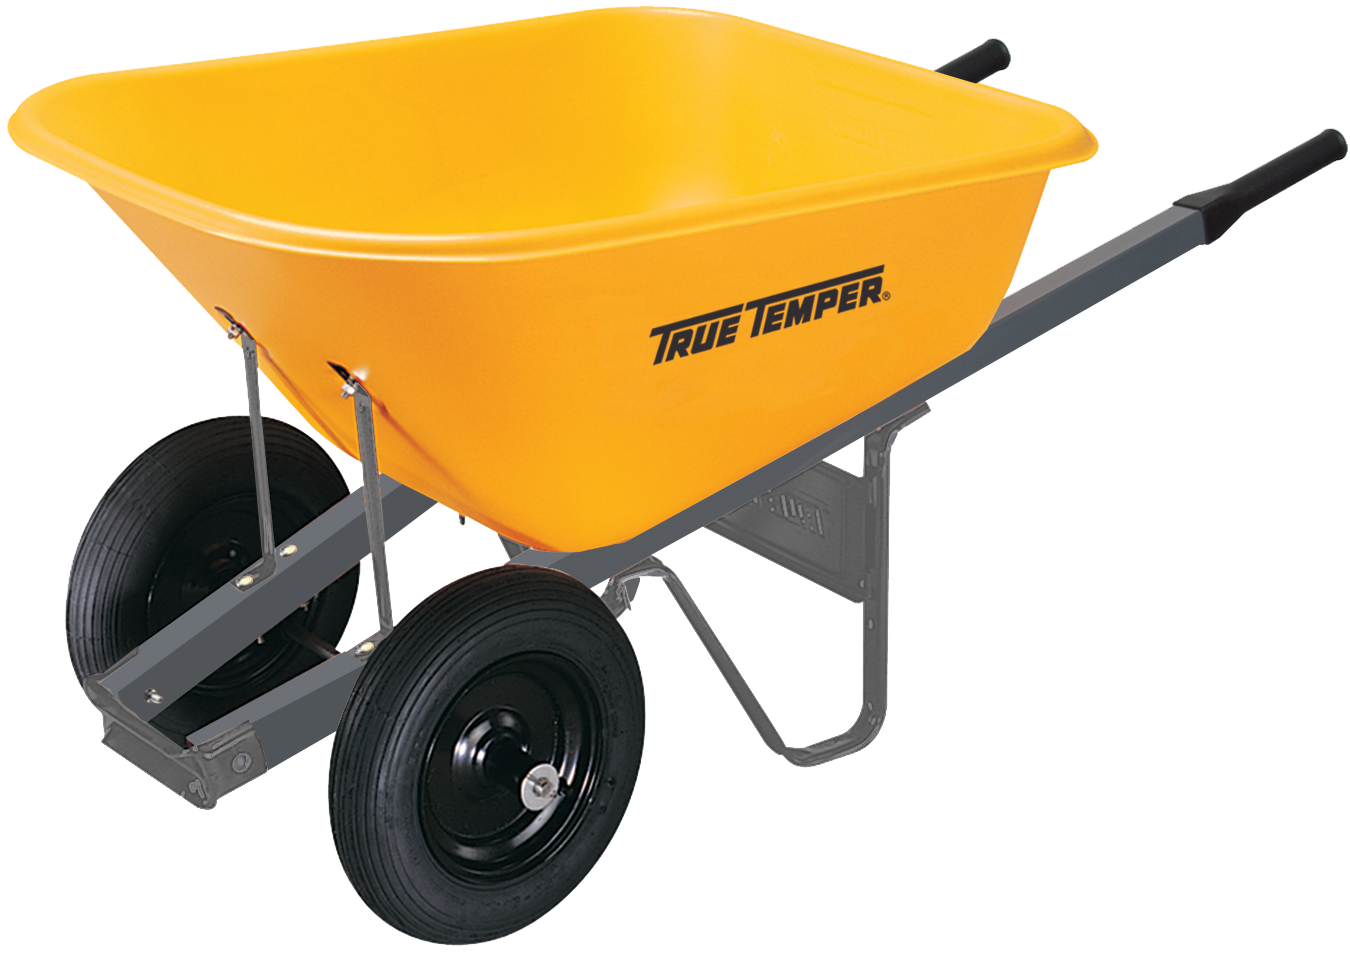 Homedepot 11 6 Cubic Foot Poly Wheelbarrow With Dual Wheels True